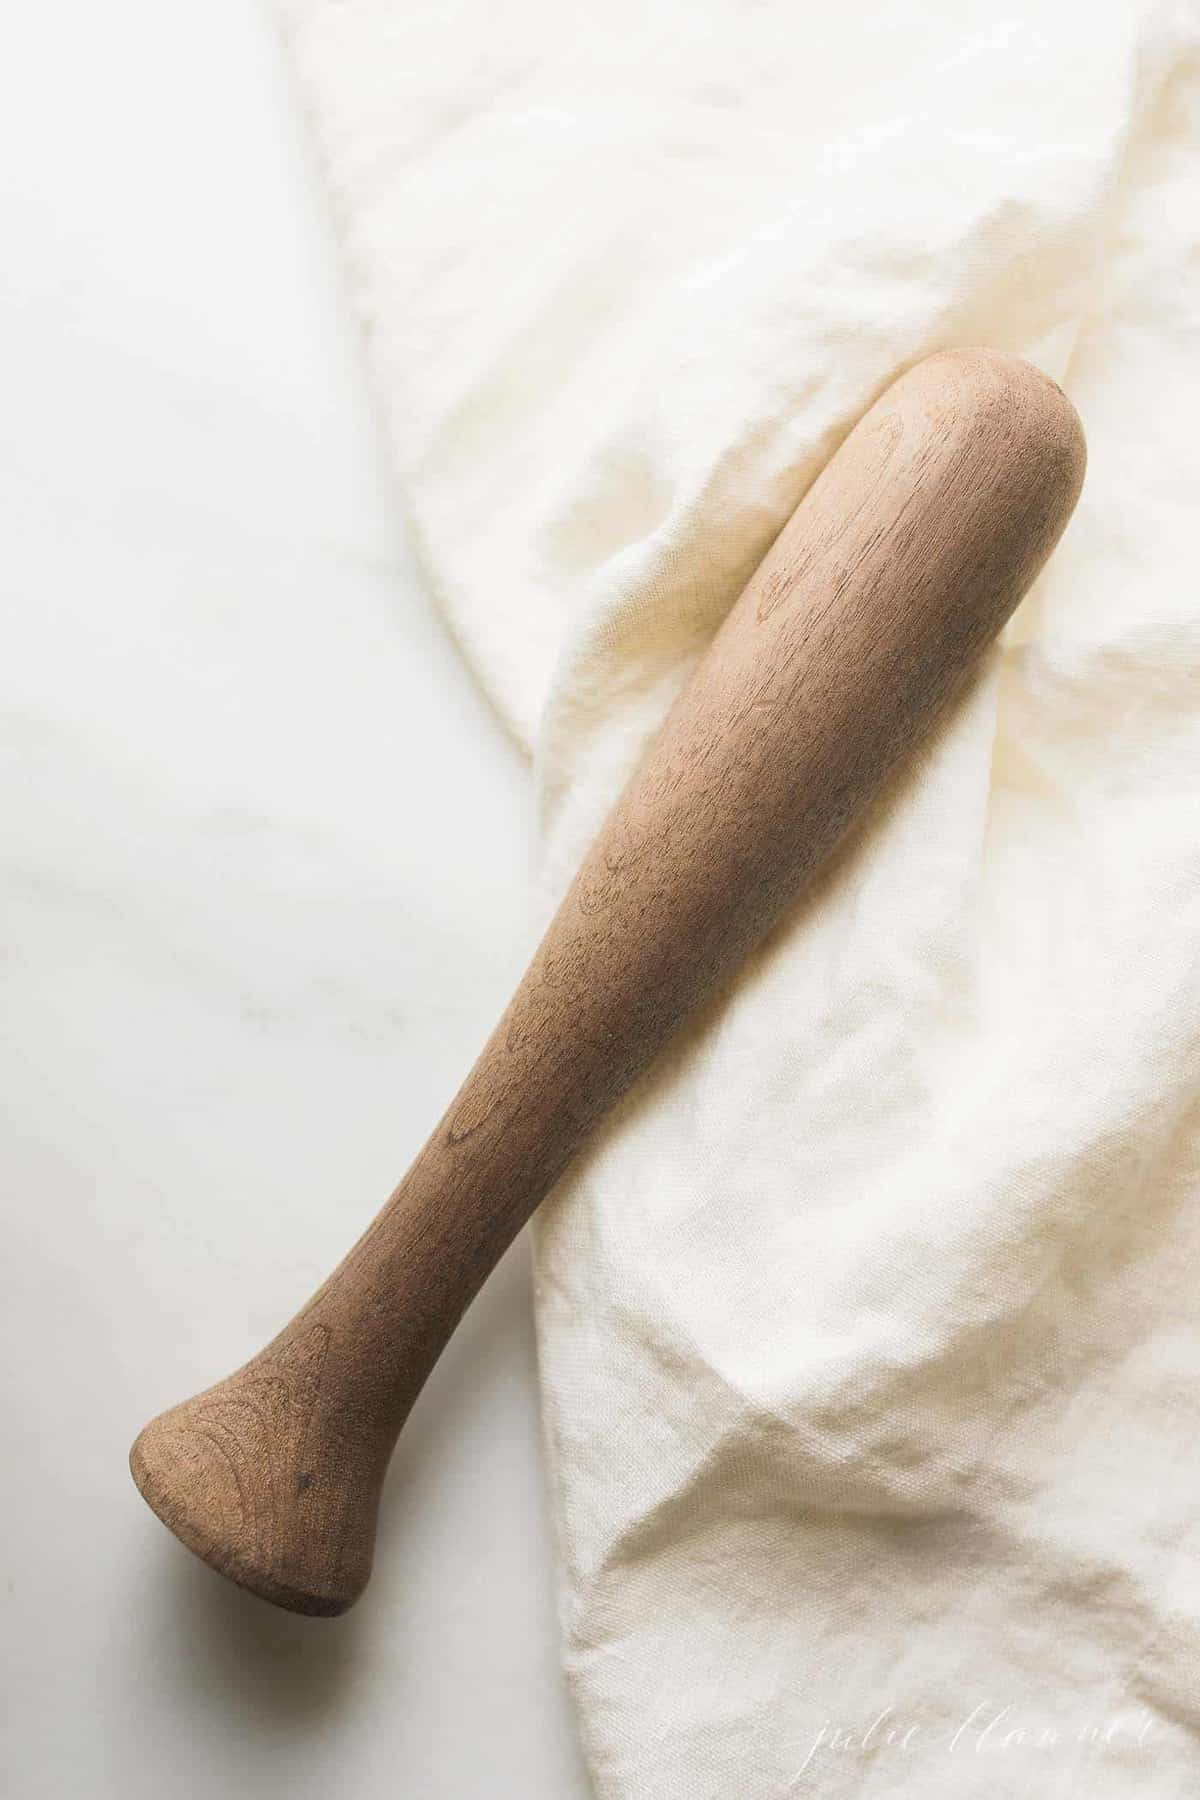 wood mojito muddler on a white surface